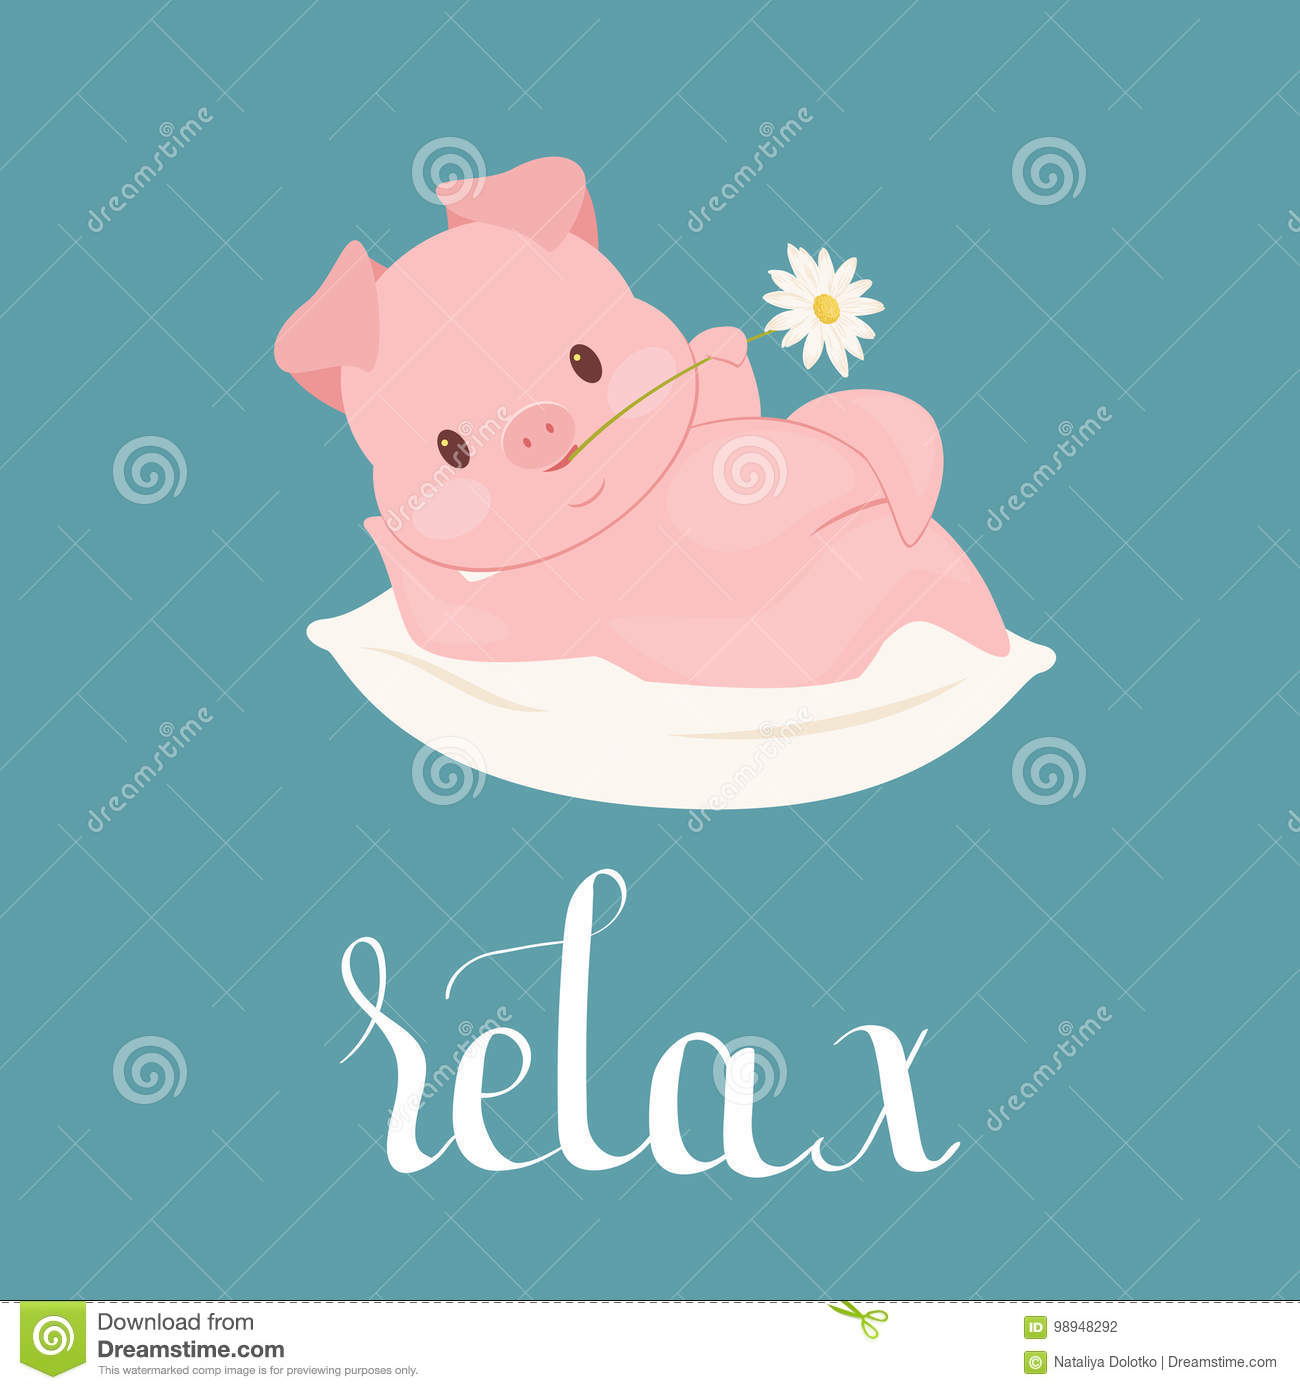 Funny pig character laying on a pillow with flower in mouth. Poster, greeting card, wall art or wallpaper template. Vector art.